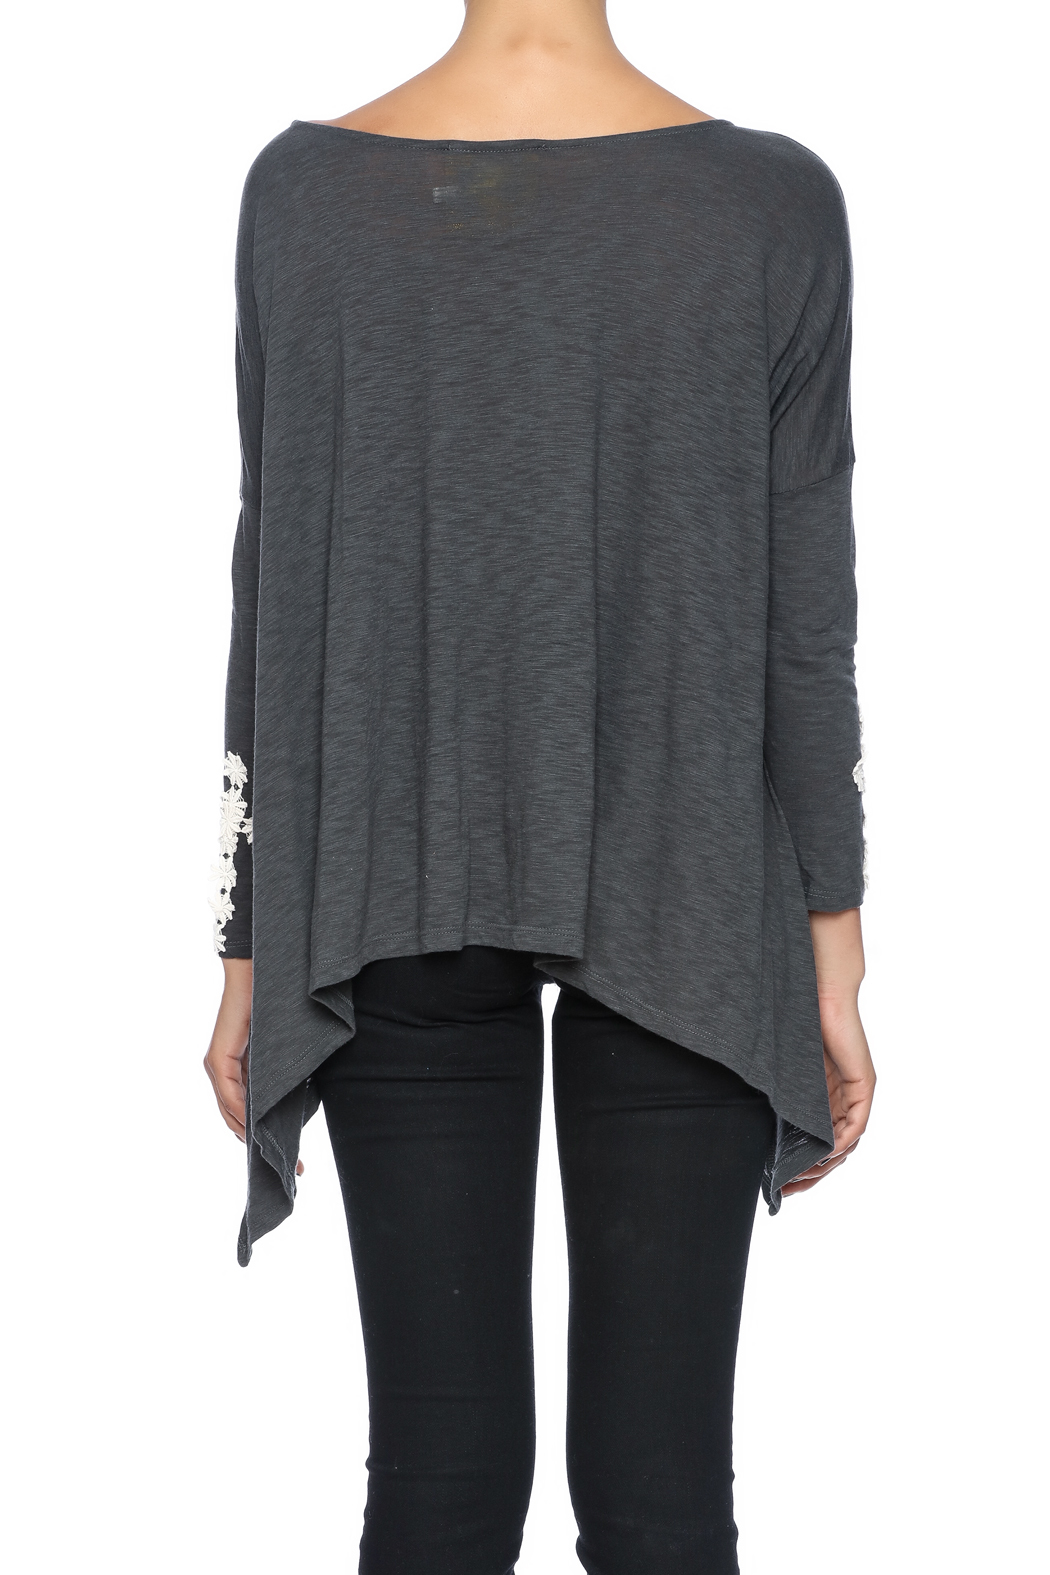 Missy Robertson Ali Cross Top - Back Cropped Image